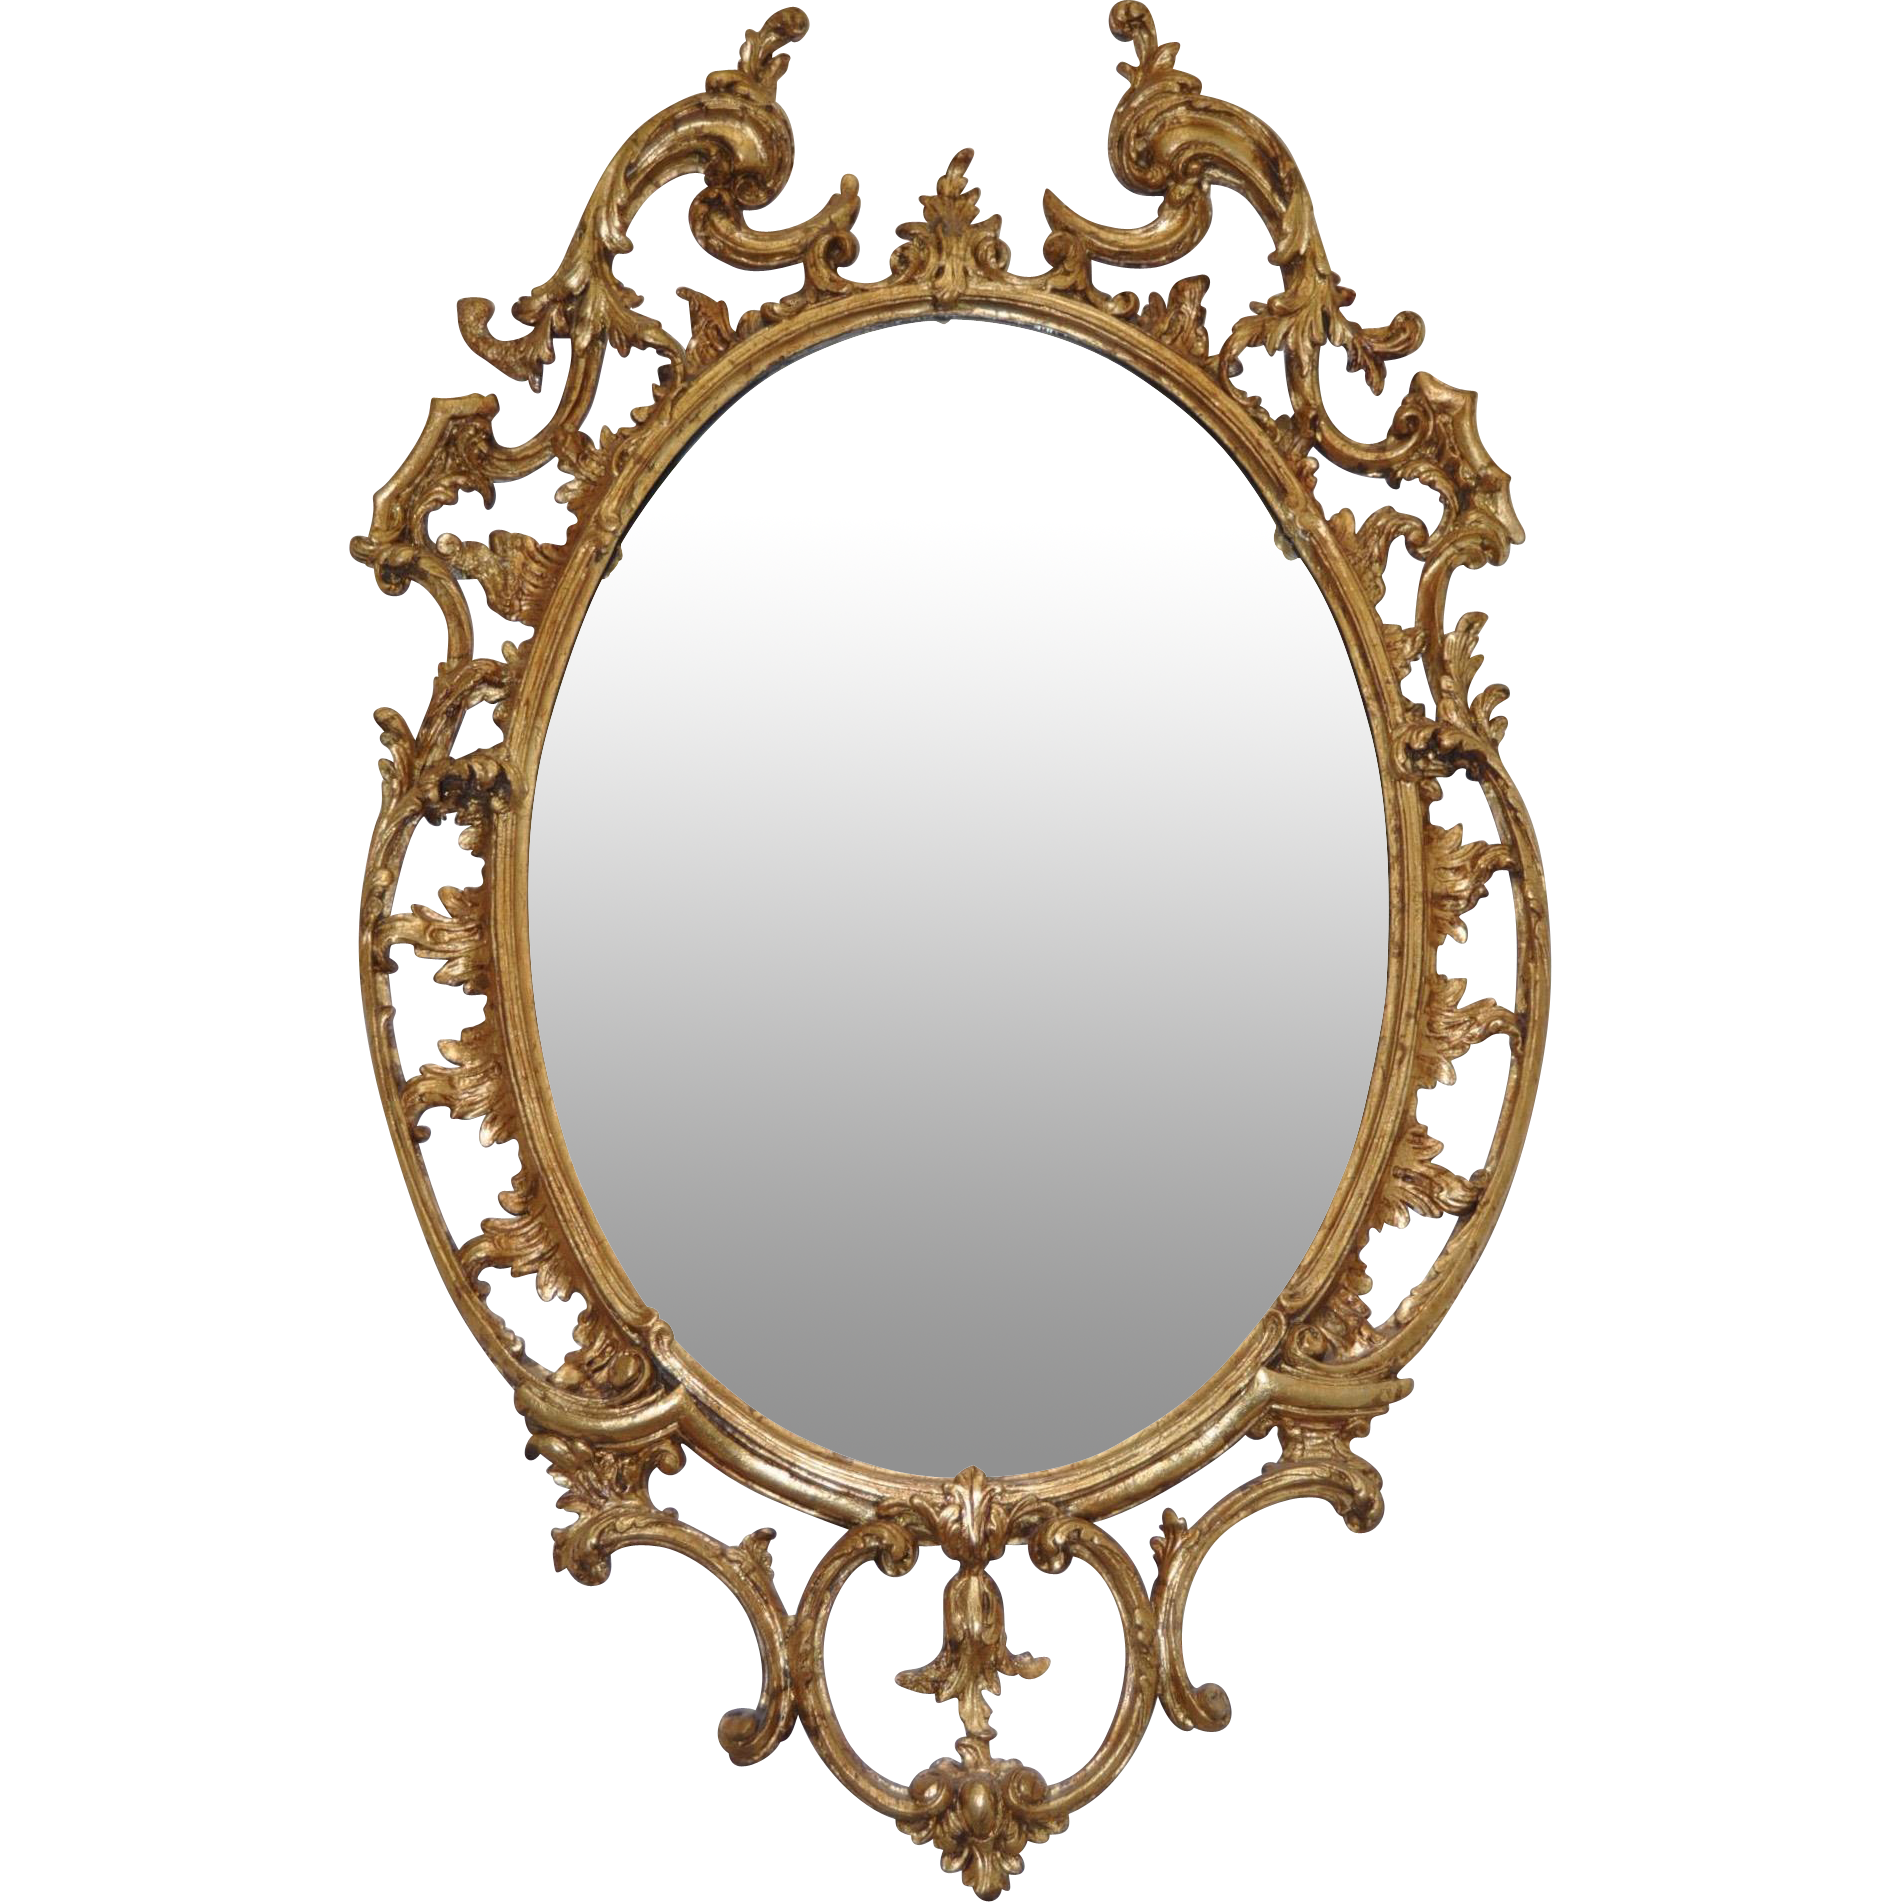 Mirror Free Download 7340